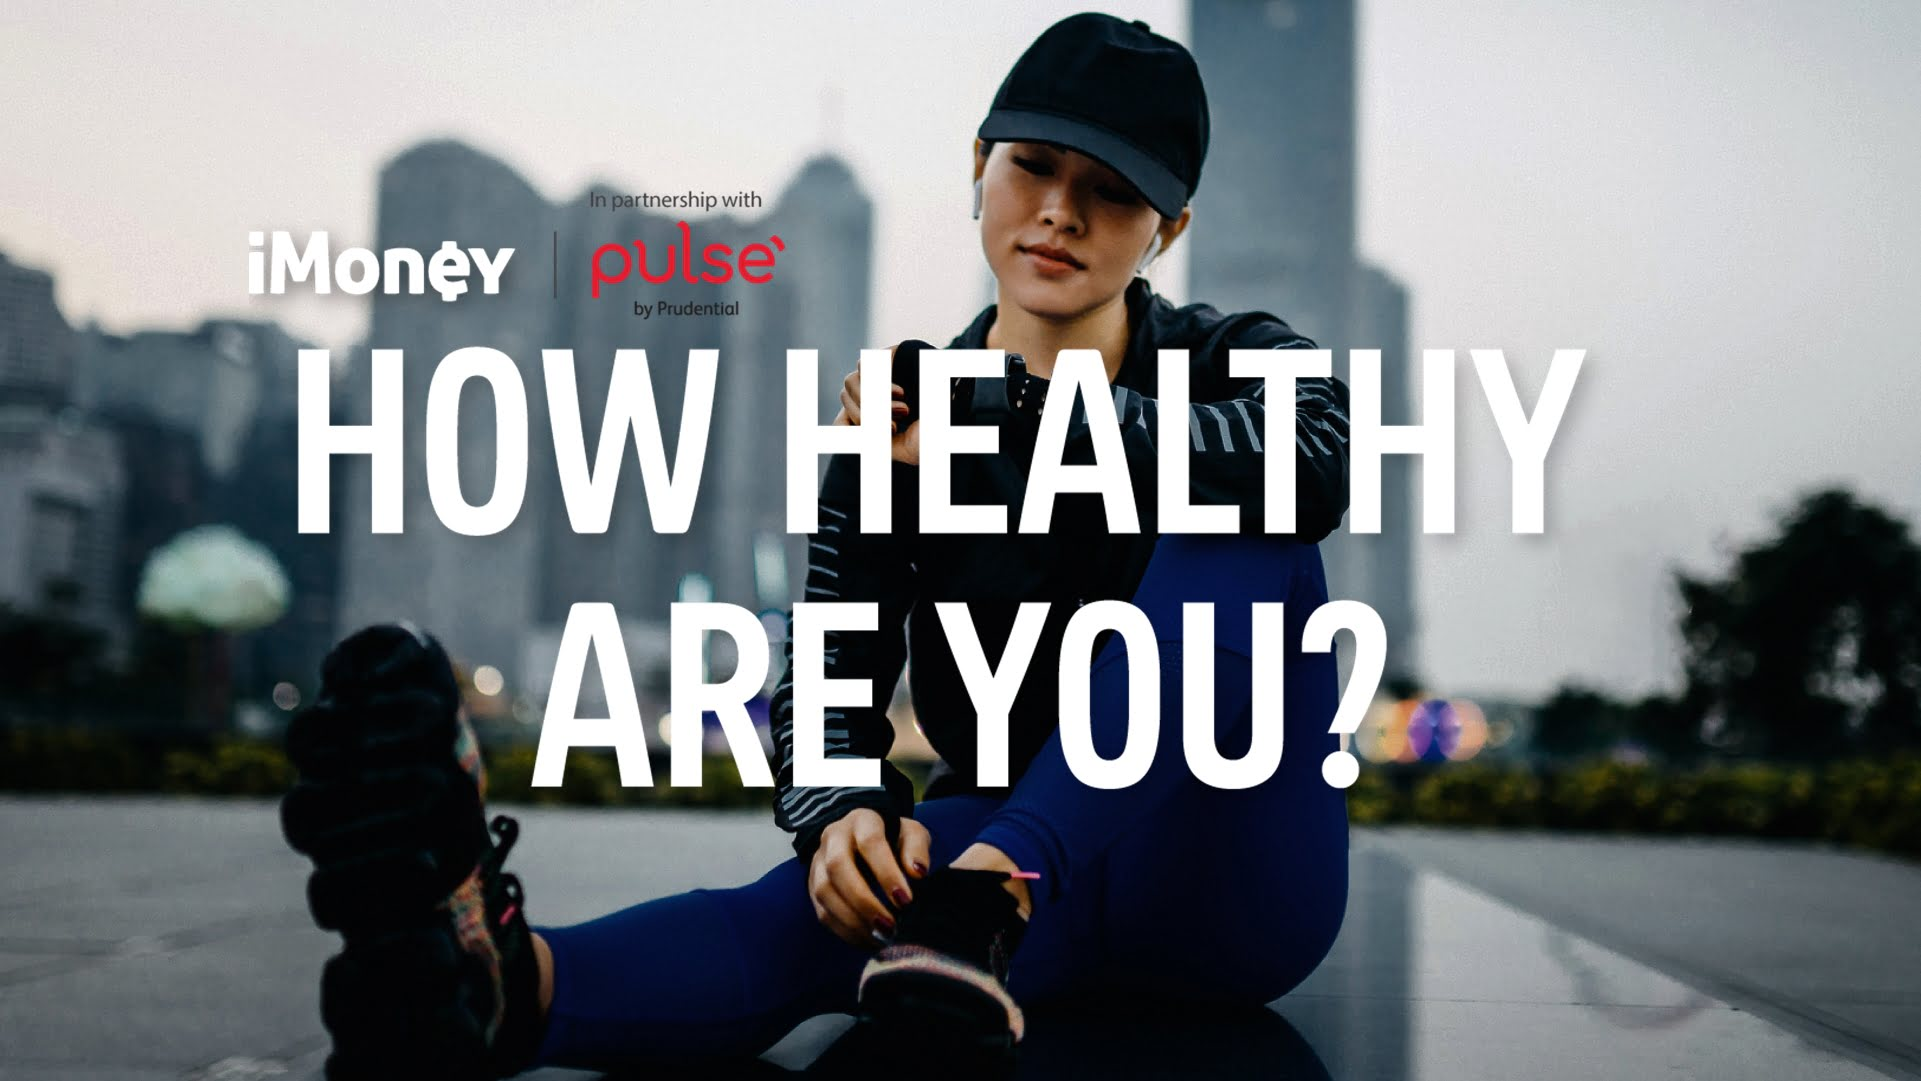 Take Our Health Survey And Stand A Chance To Win A RM100 Voucher!